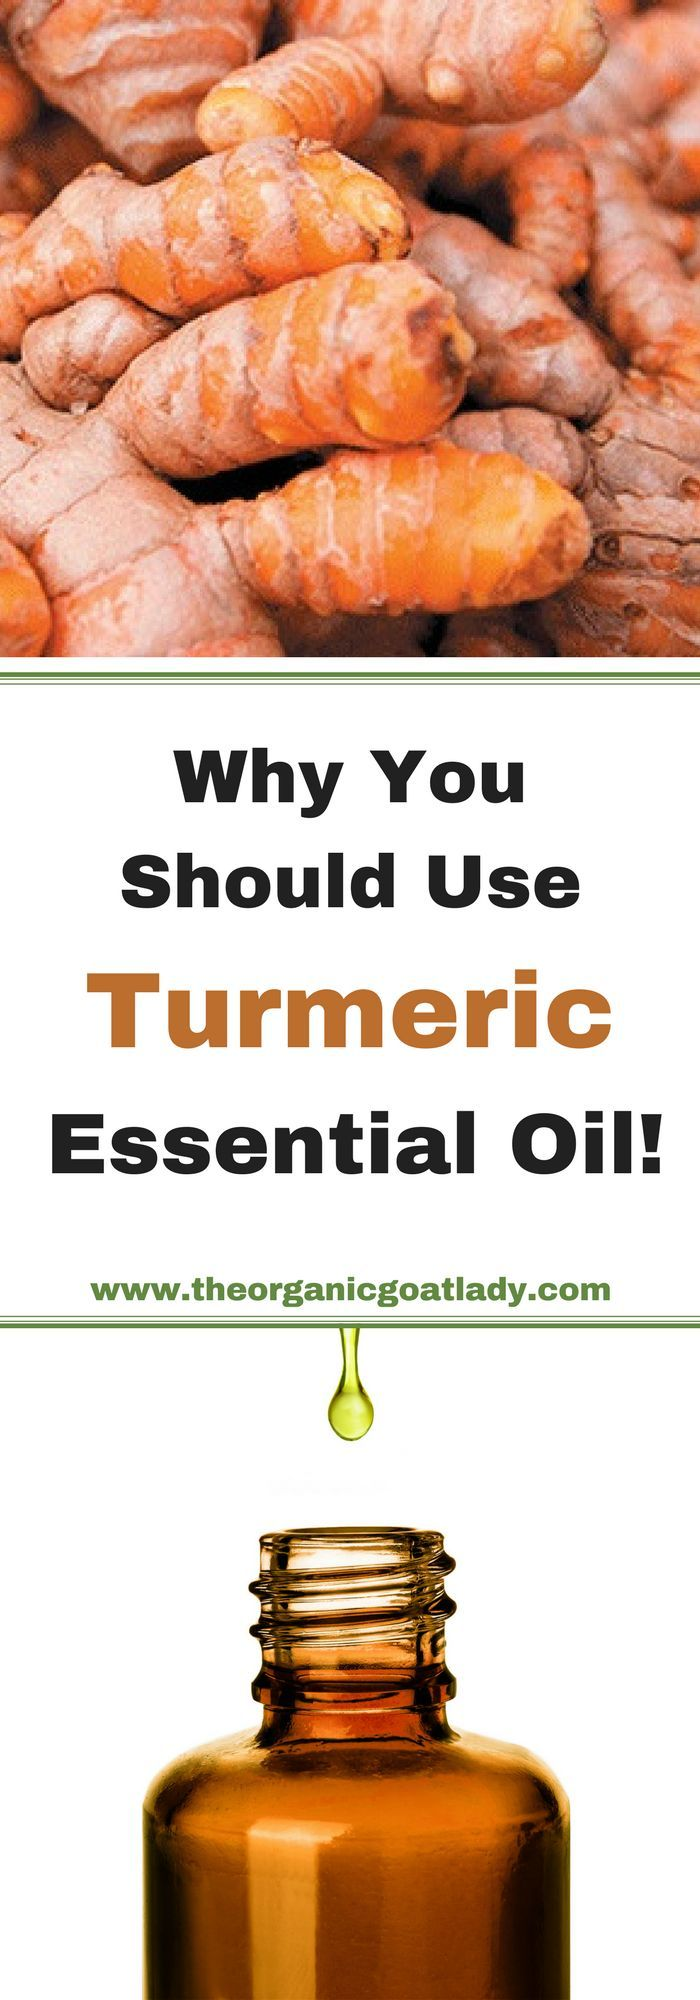 ∆ Turmeric Essential Oil... Why You Should Use Turmeric Essential Oil!